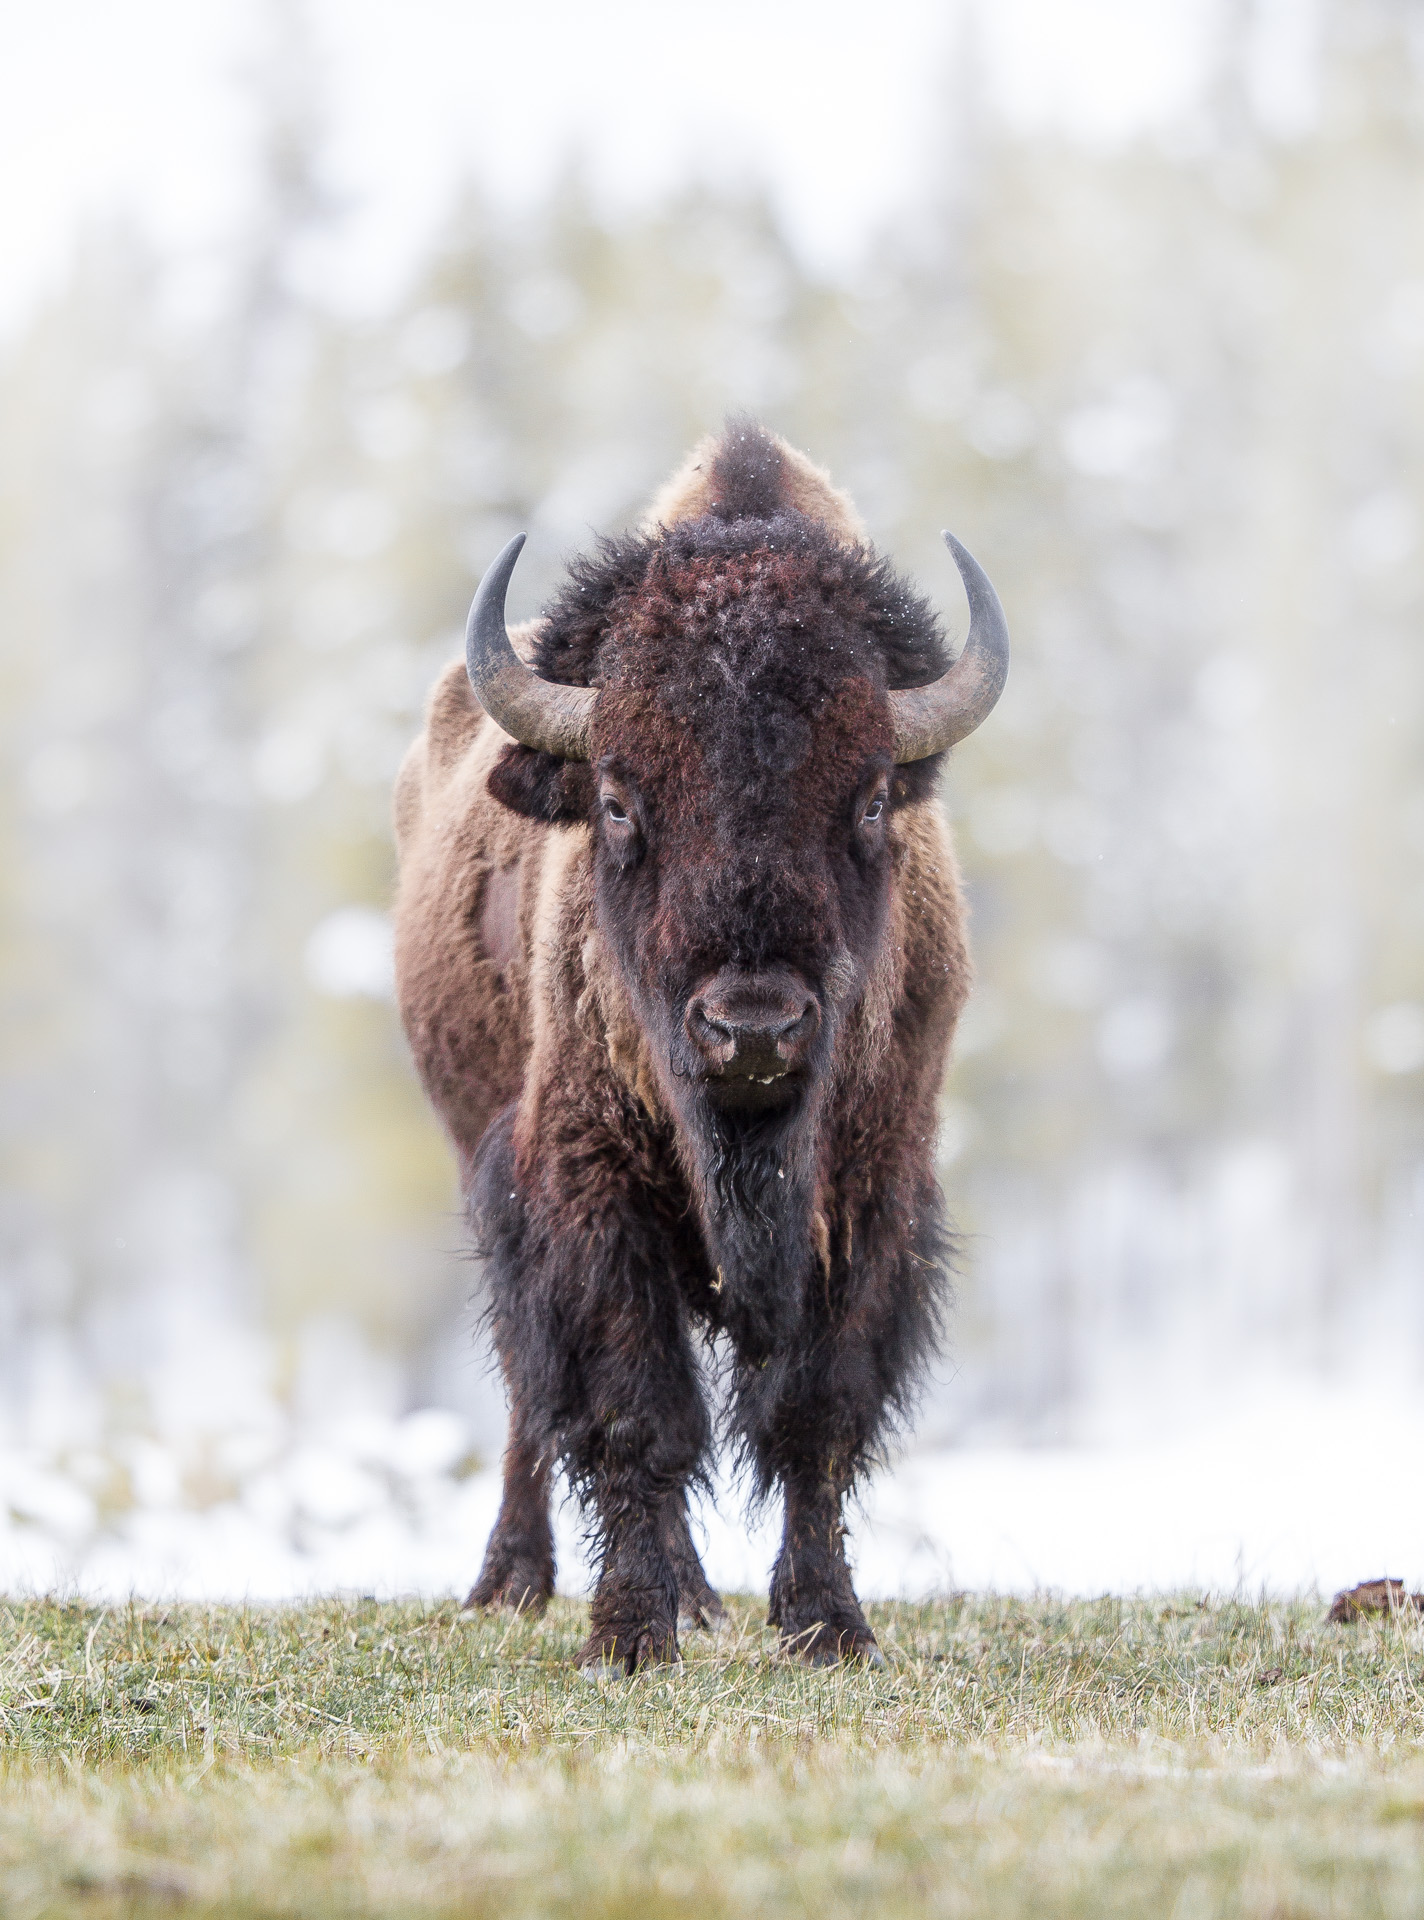 Bison standing facing me Canon 200mm f2 lens Yellowstone National Park WY Sparky Stensaas-0521